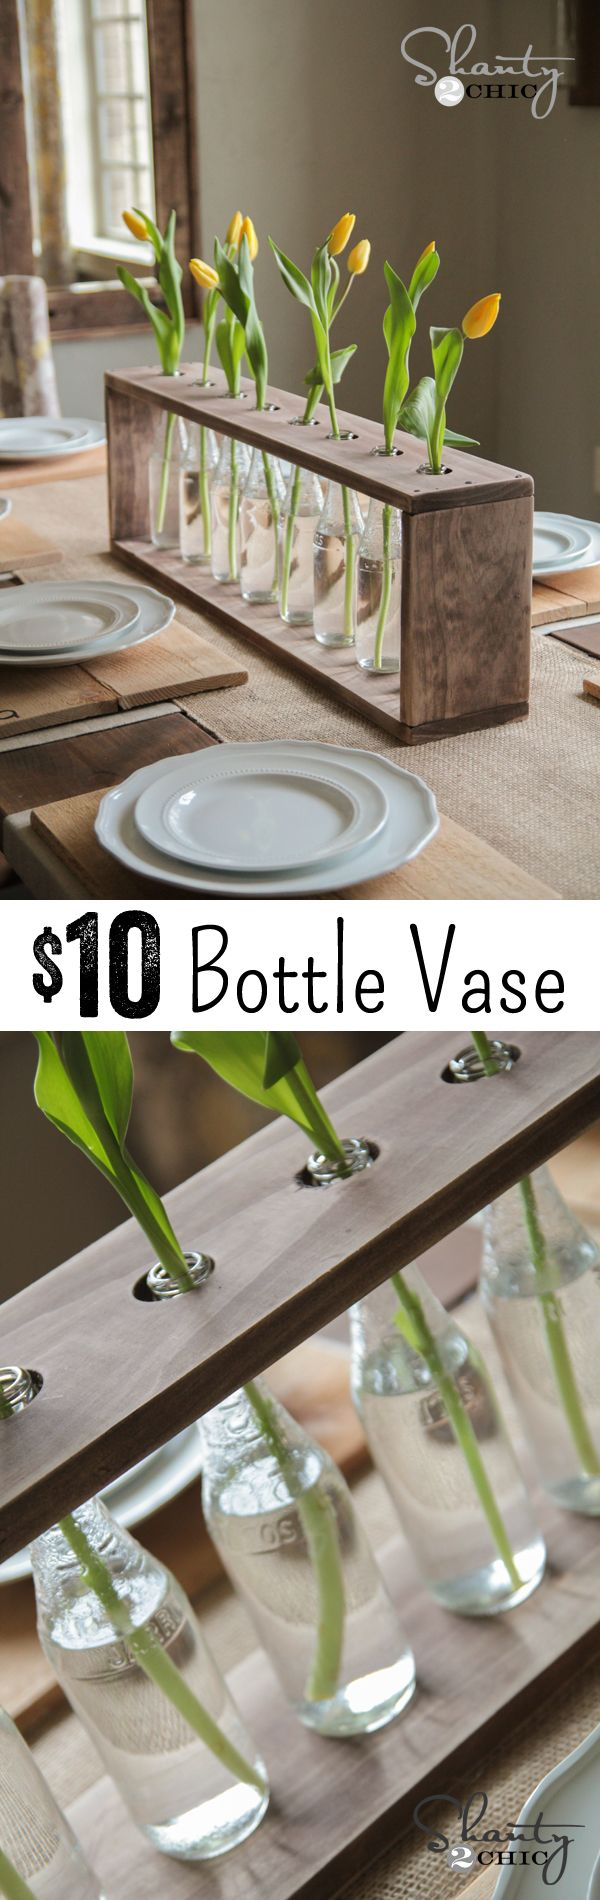 Easy DIY Bottle Vase Centerpiece... LOVE! SO making this! www.shanty-2-chic.com